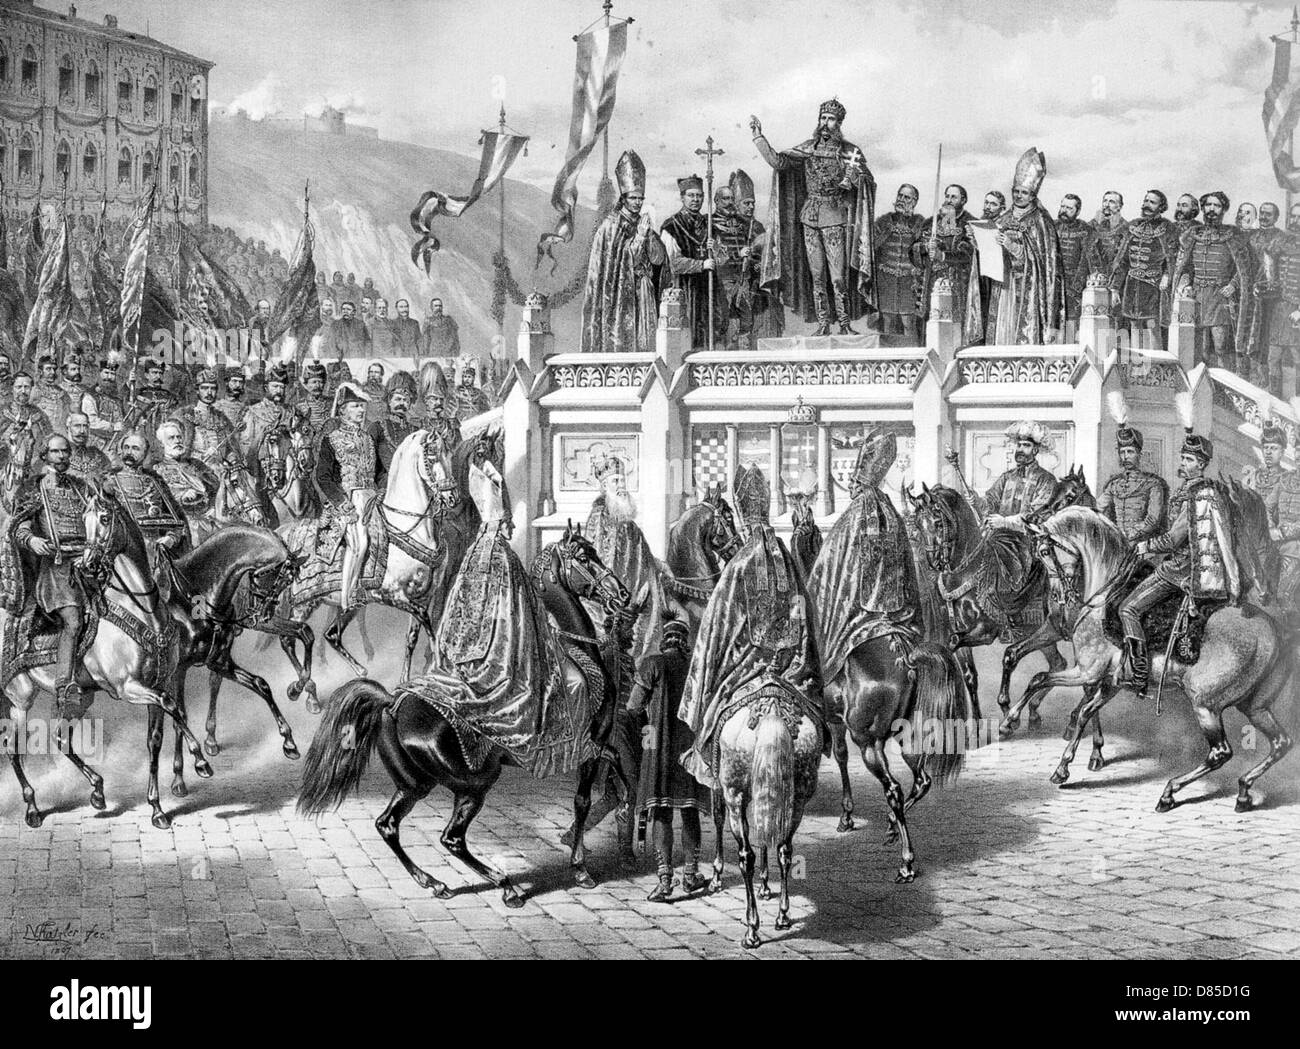 EMPEROR FRANZ JOSEPH OF AUSTRIA (1830-1916) is crowned King of Hungary in Budapest on 8 June 1867 - Stock Image